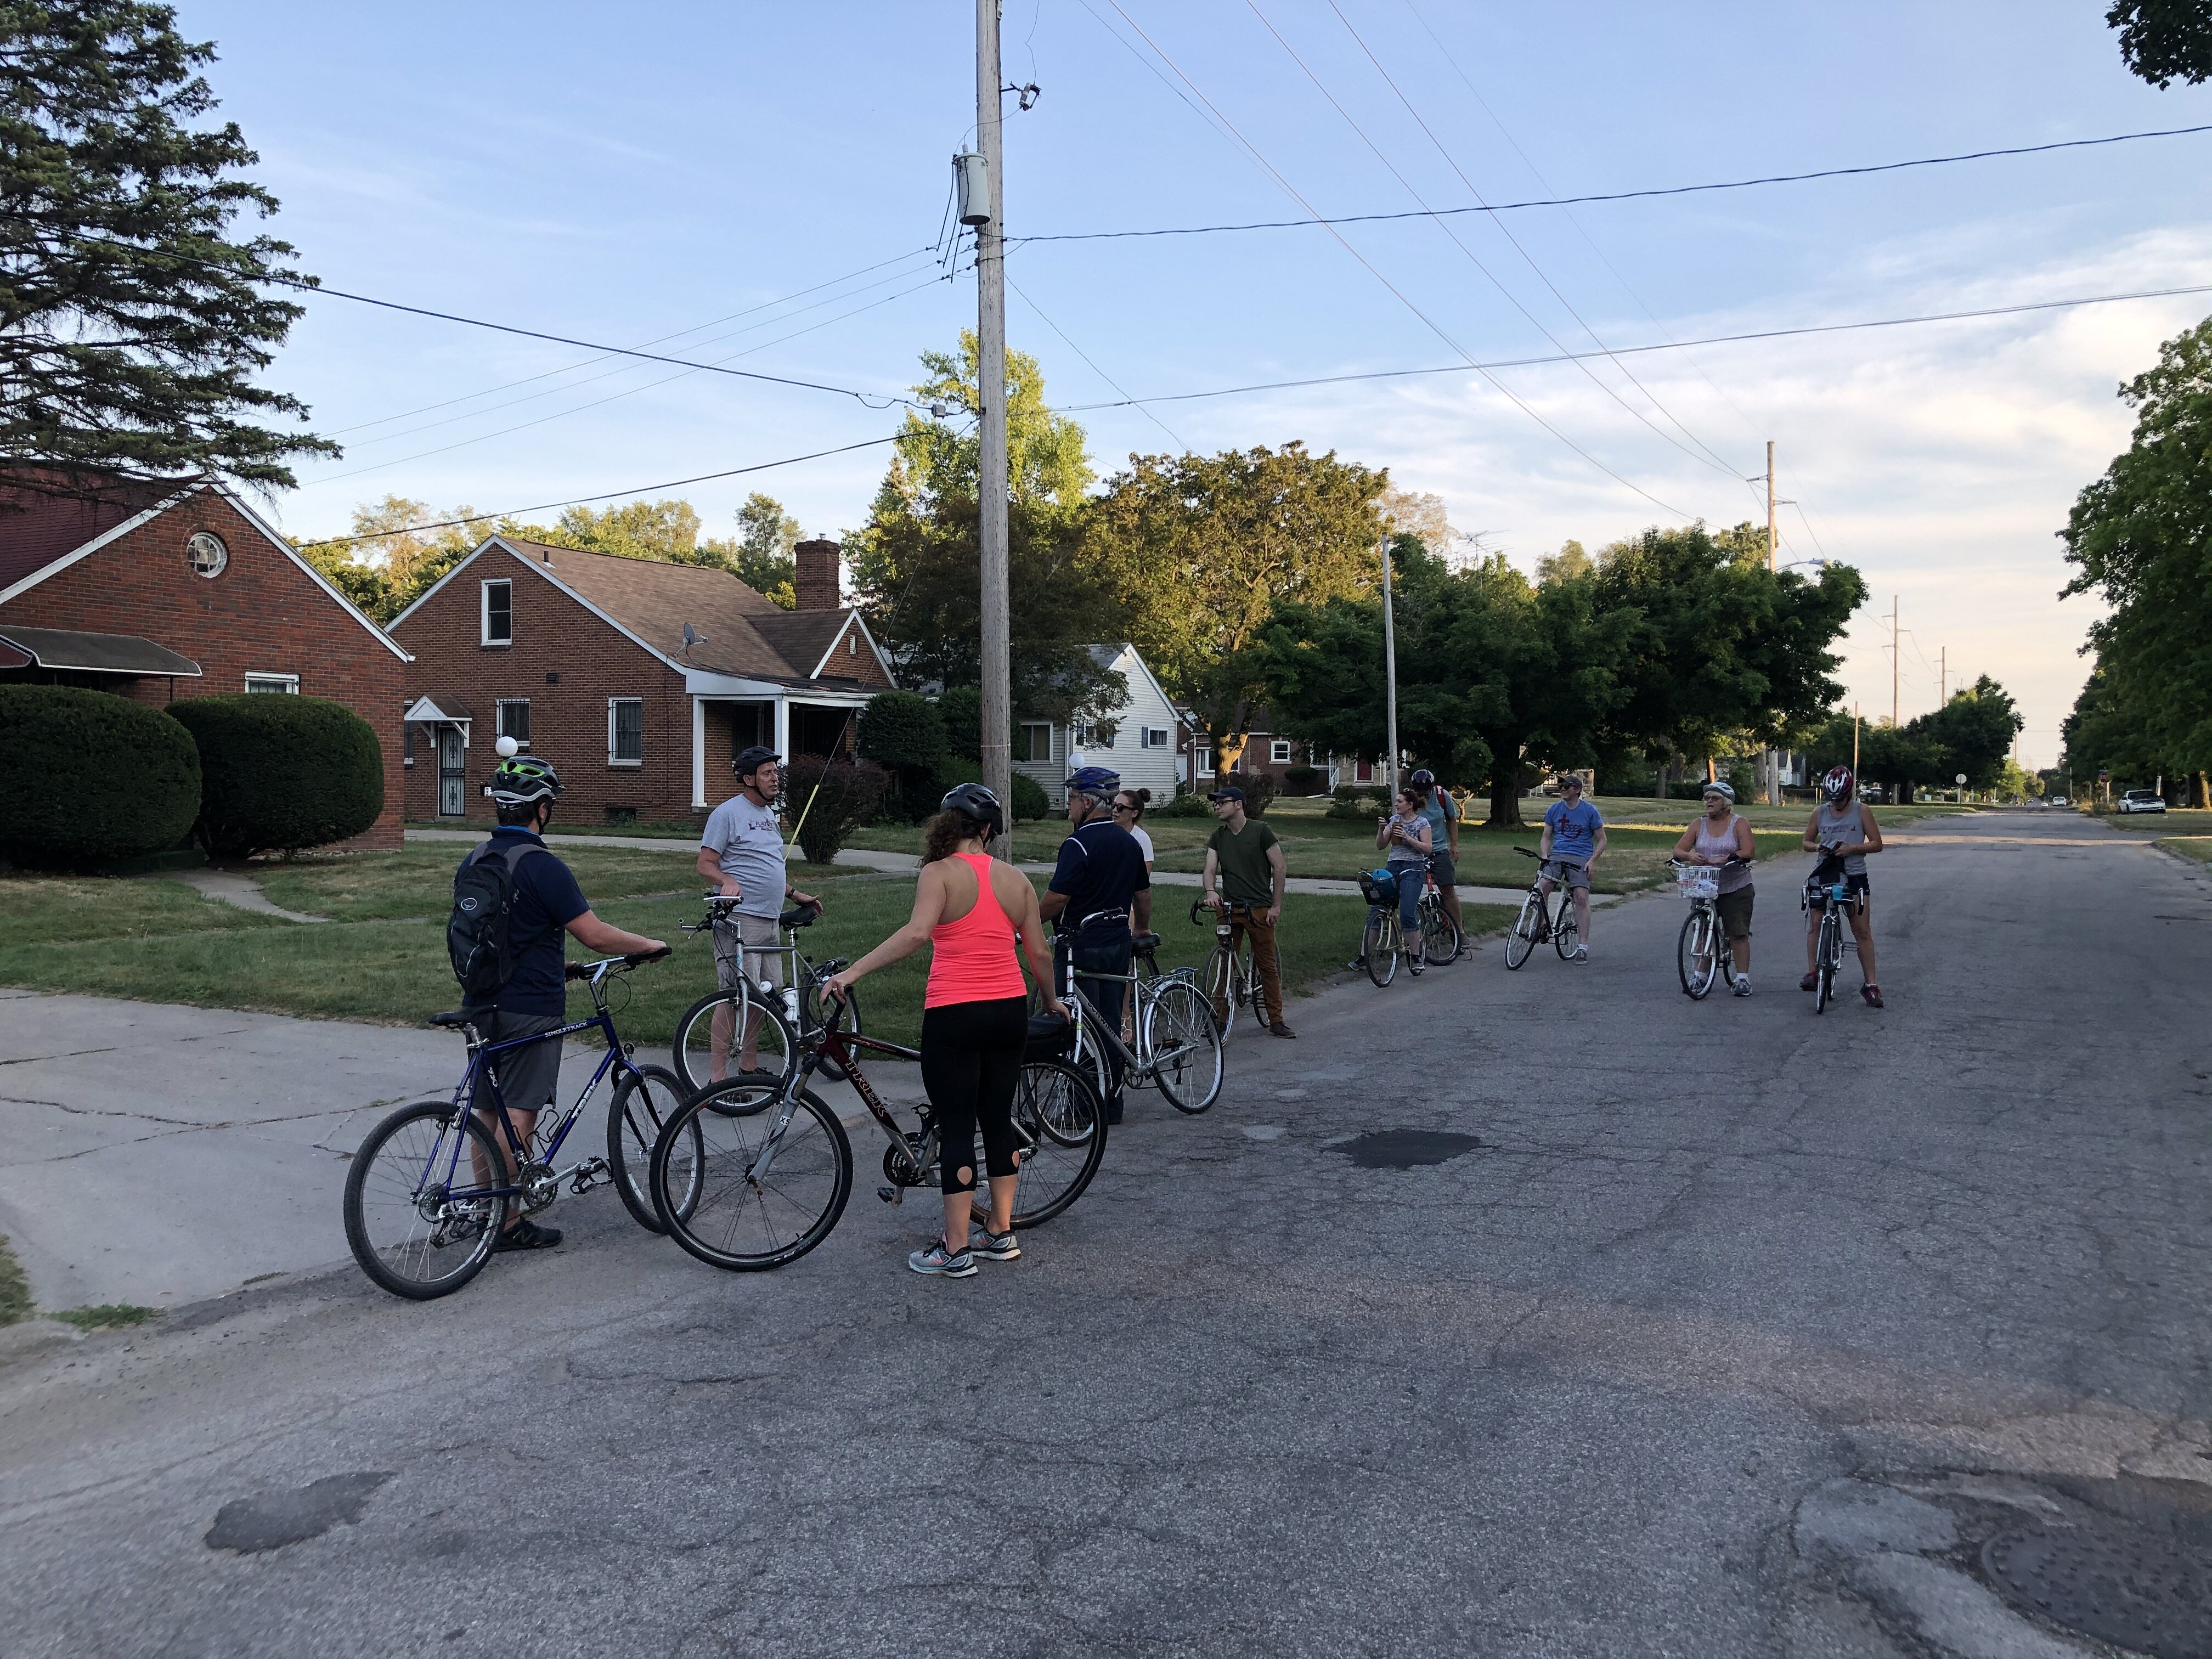 Thomas Henthorn discusses housing discrimination in Flint with participants on a Flint City Bike Tours tour in August.